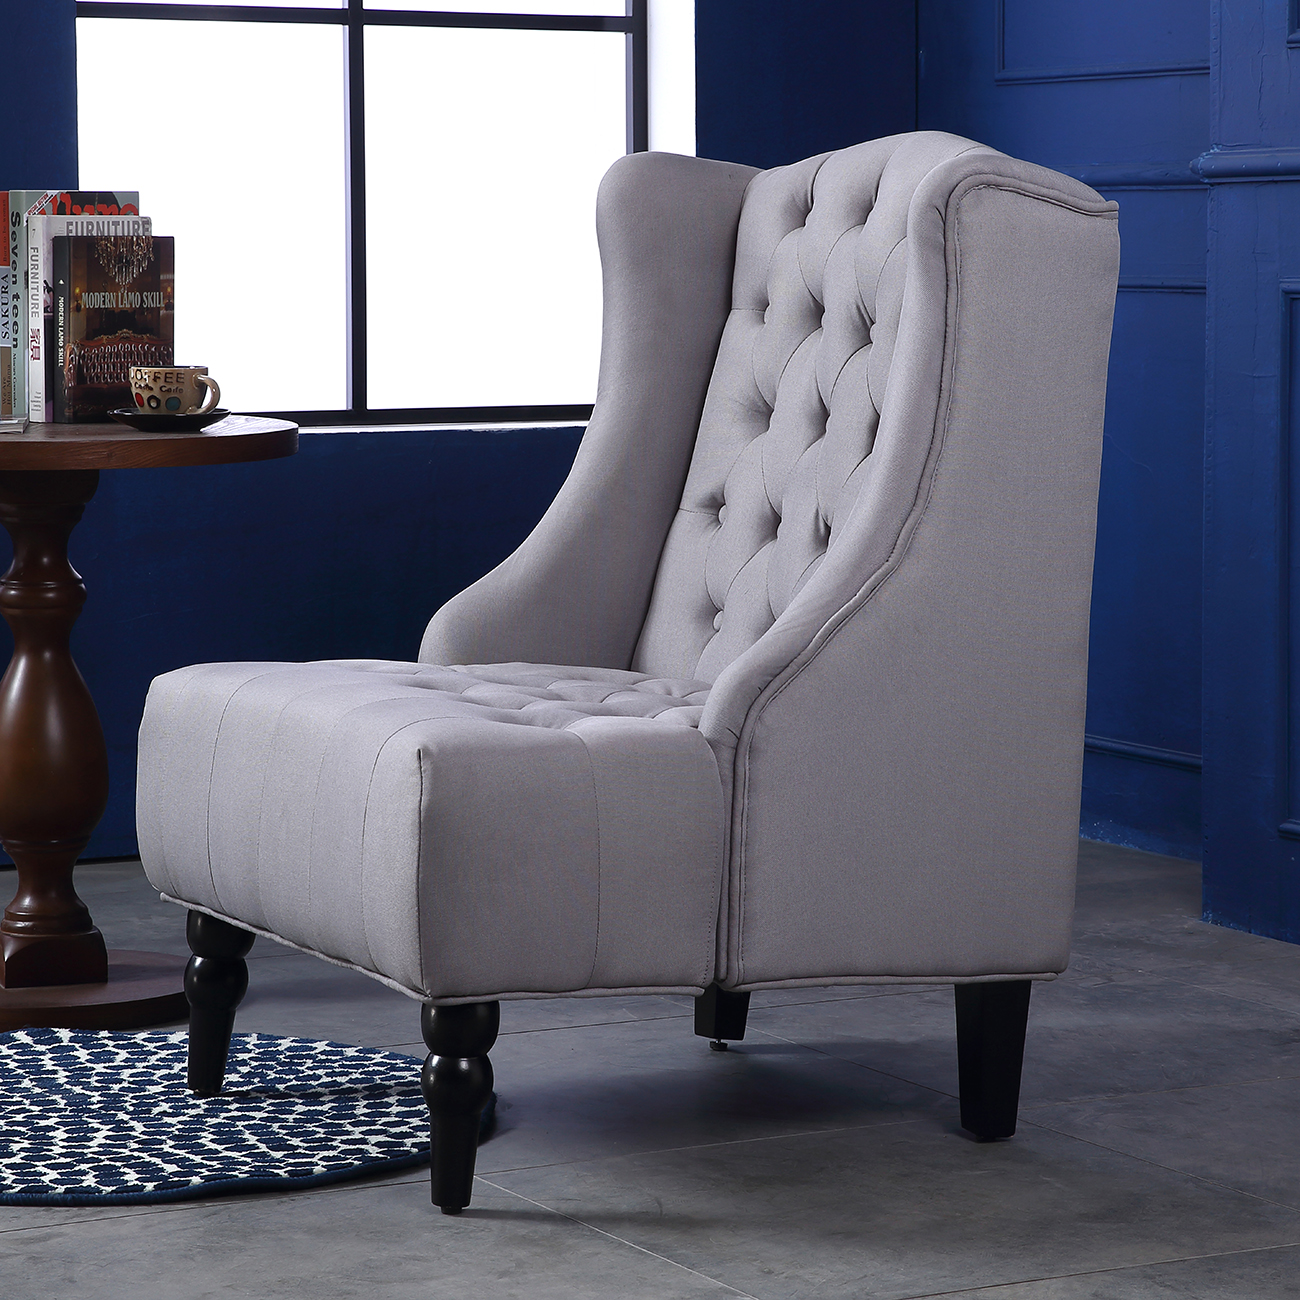 Wingback accent chair tall high back living room tufted - High back wing chairs for living room ...